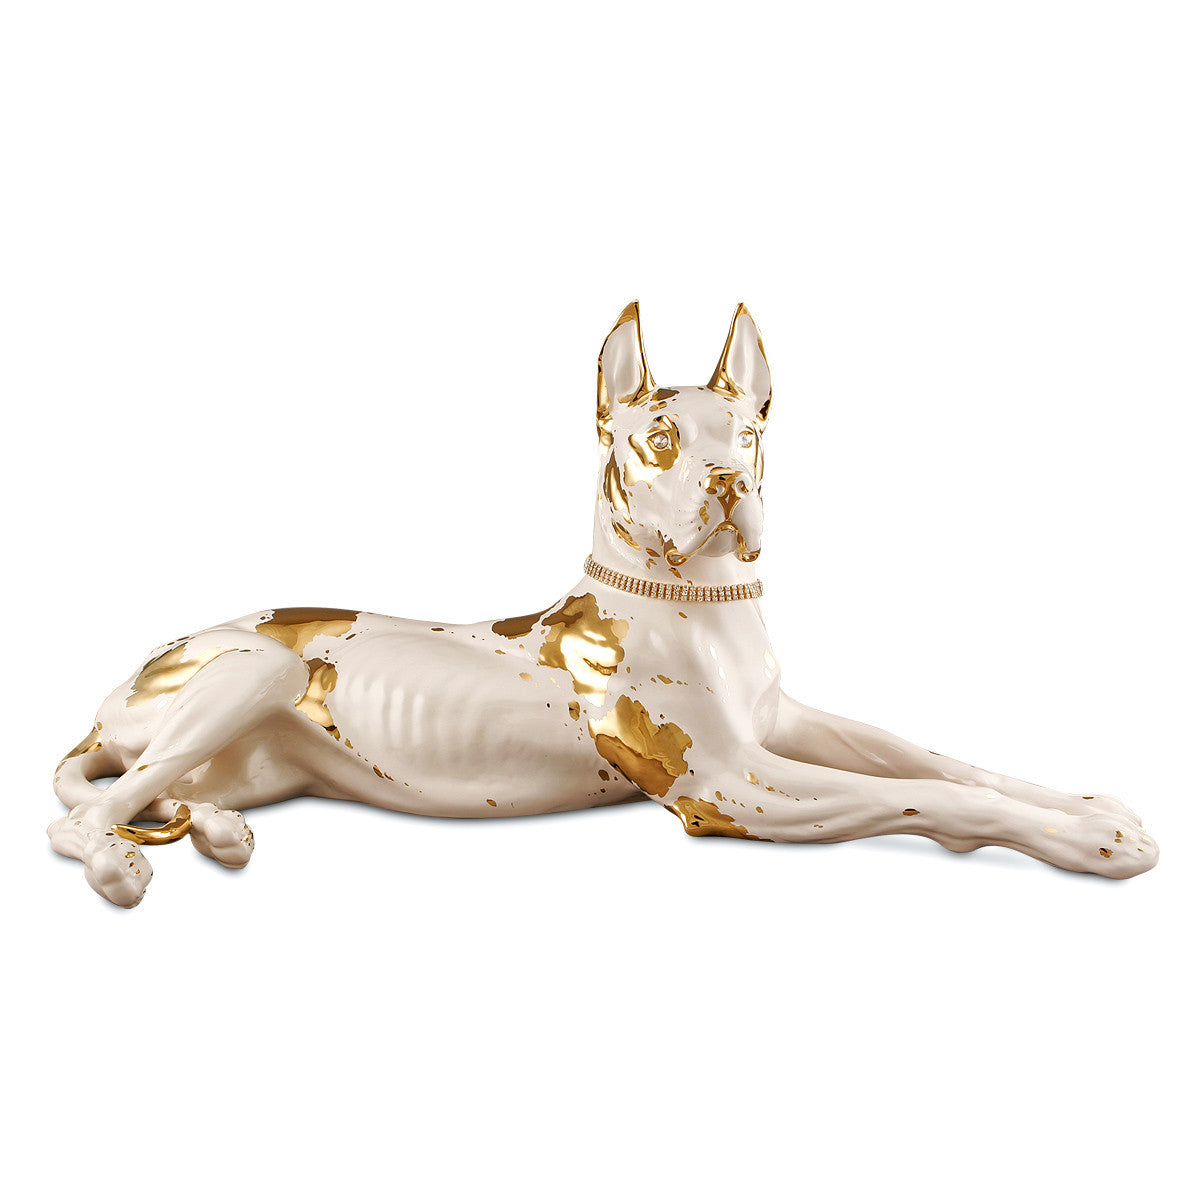 Ceramic sitting great dane dog statue with gold